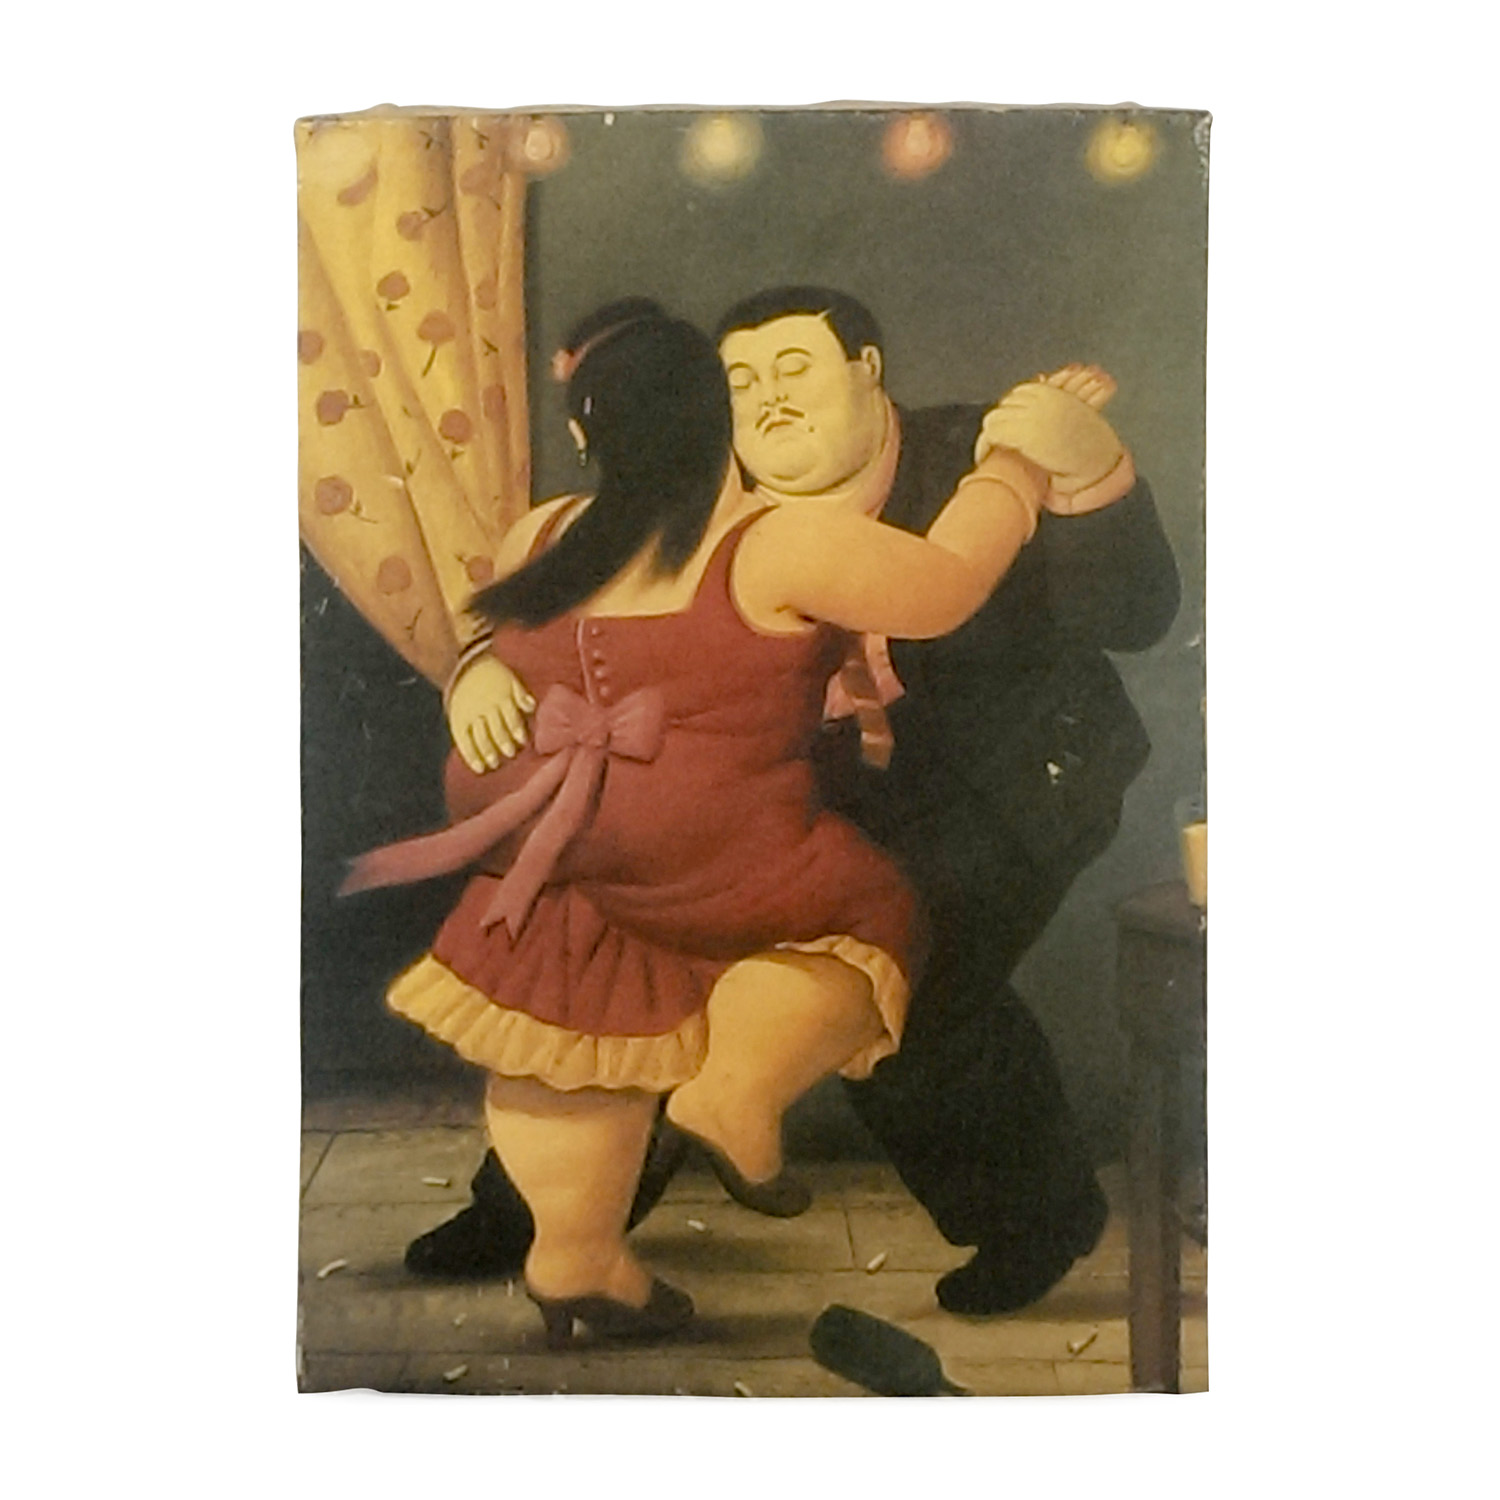 Botero Replica Oil on Canvas second hand